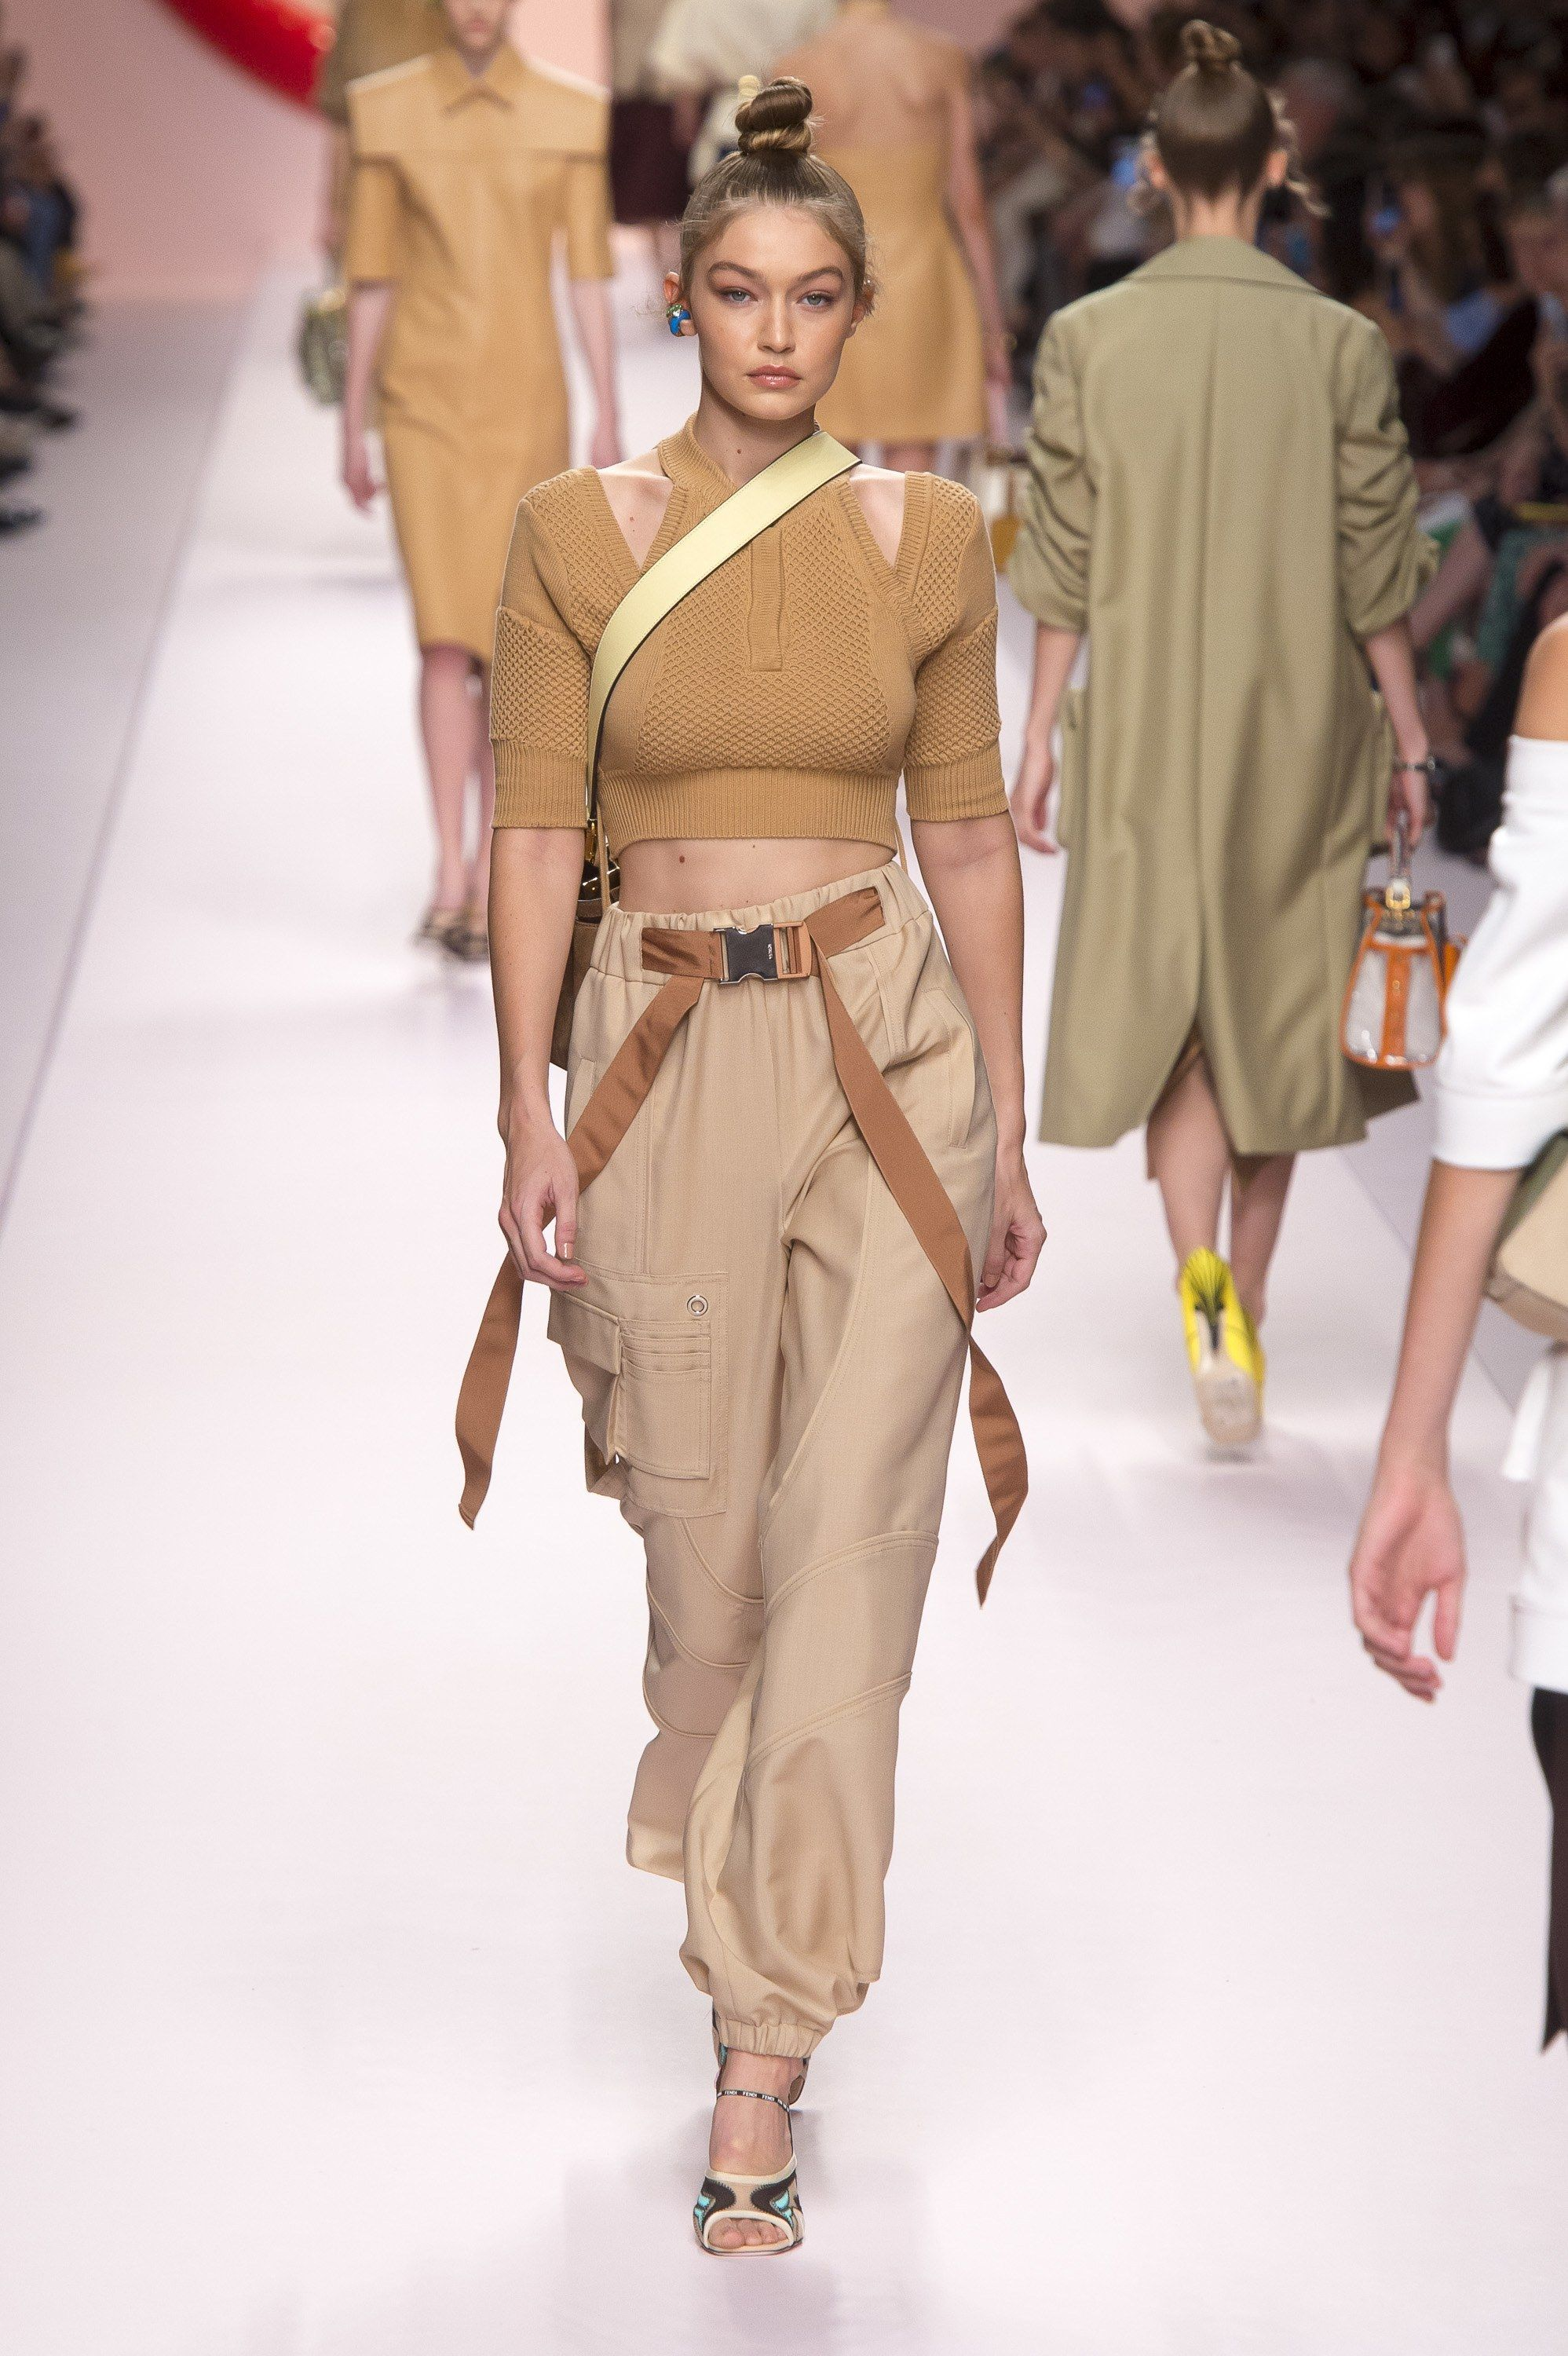 Spring Summer 6 Fashion Week Coverage: Top 6 Spring Summer